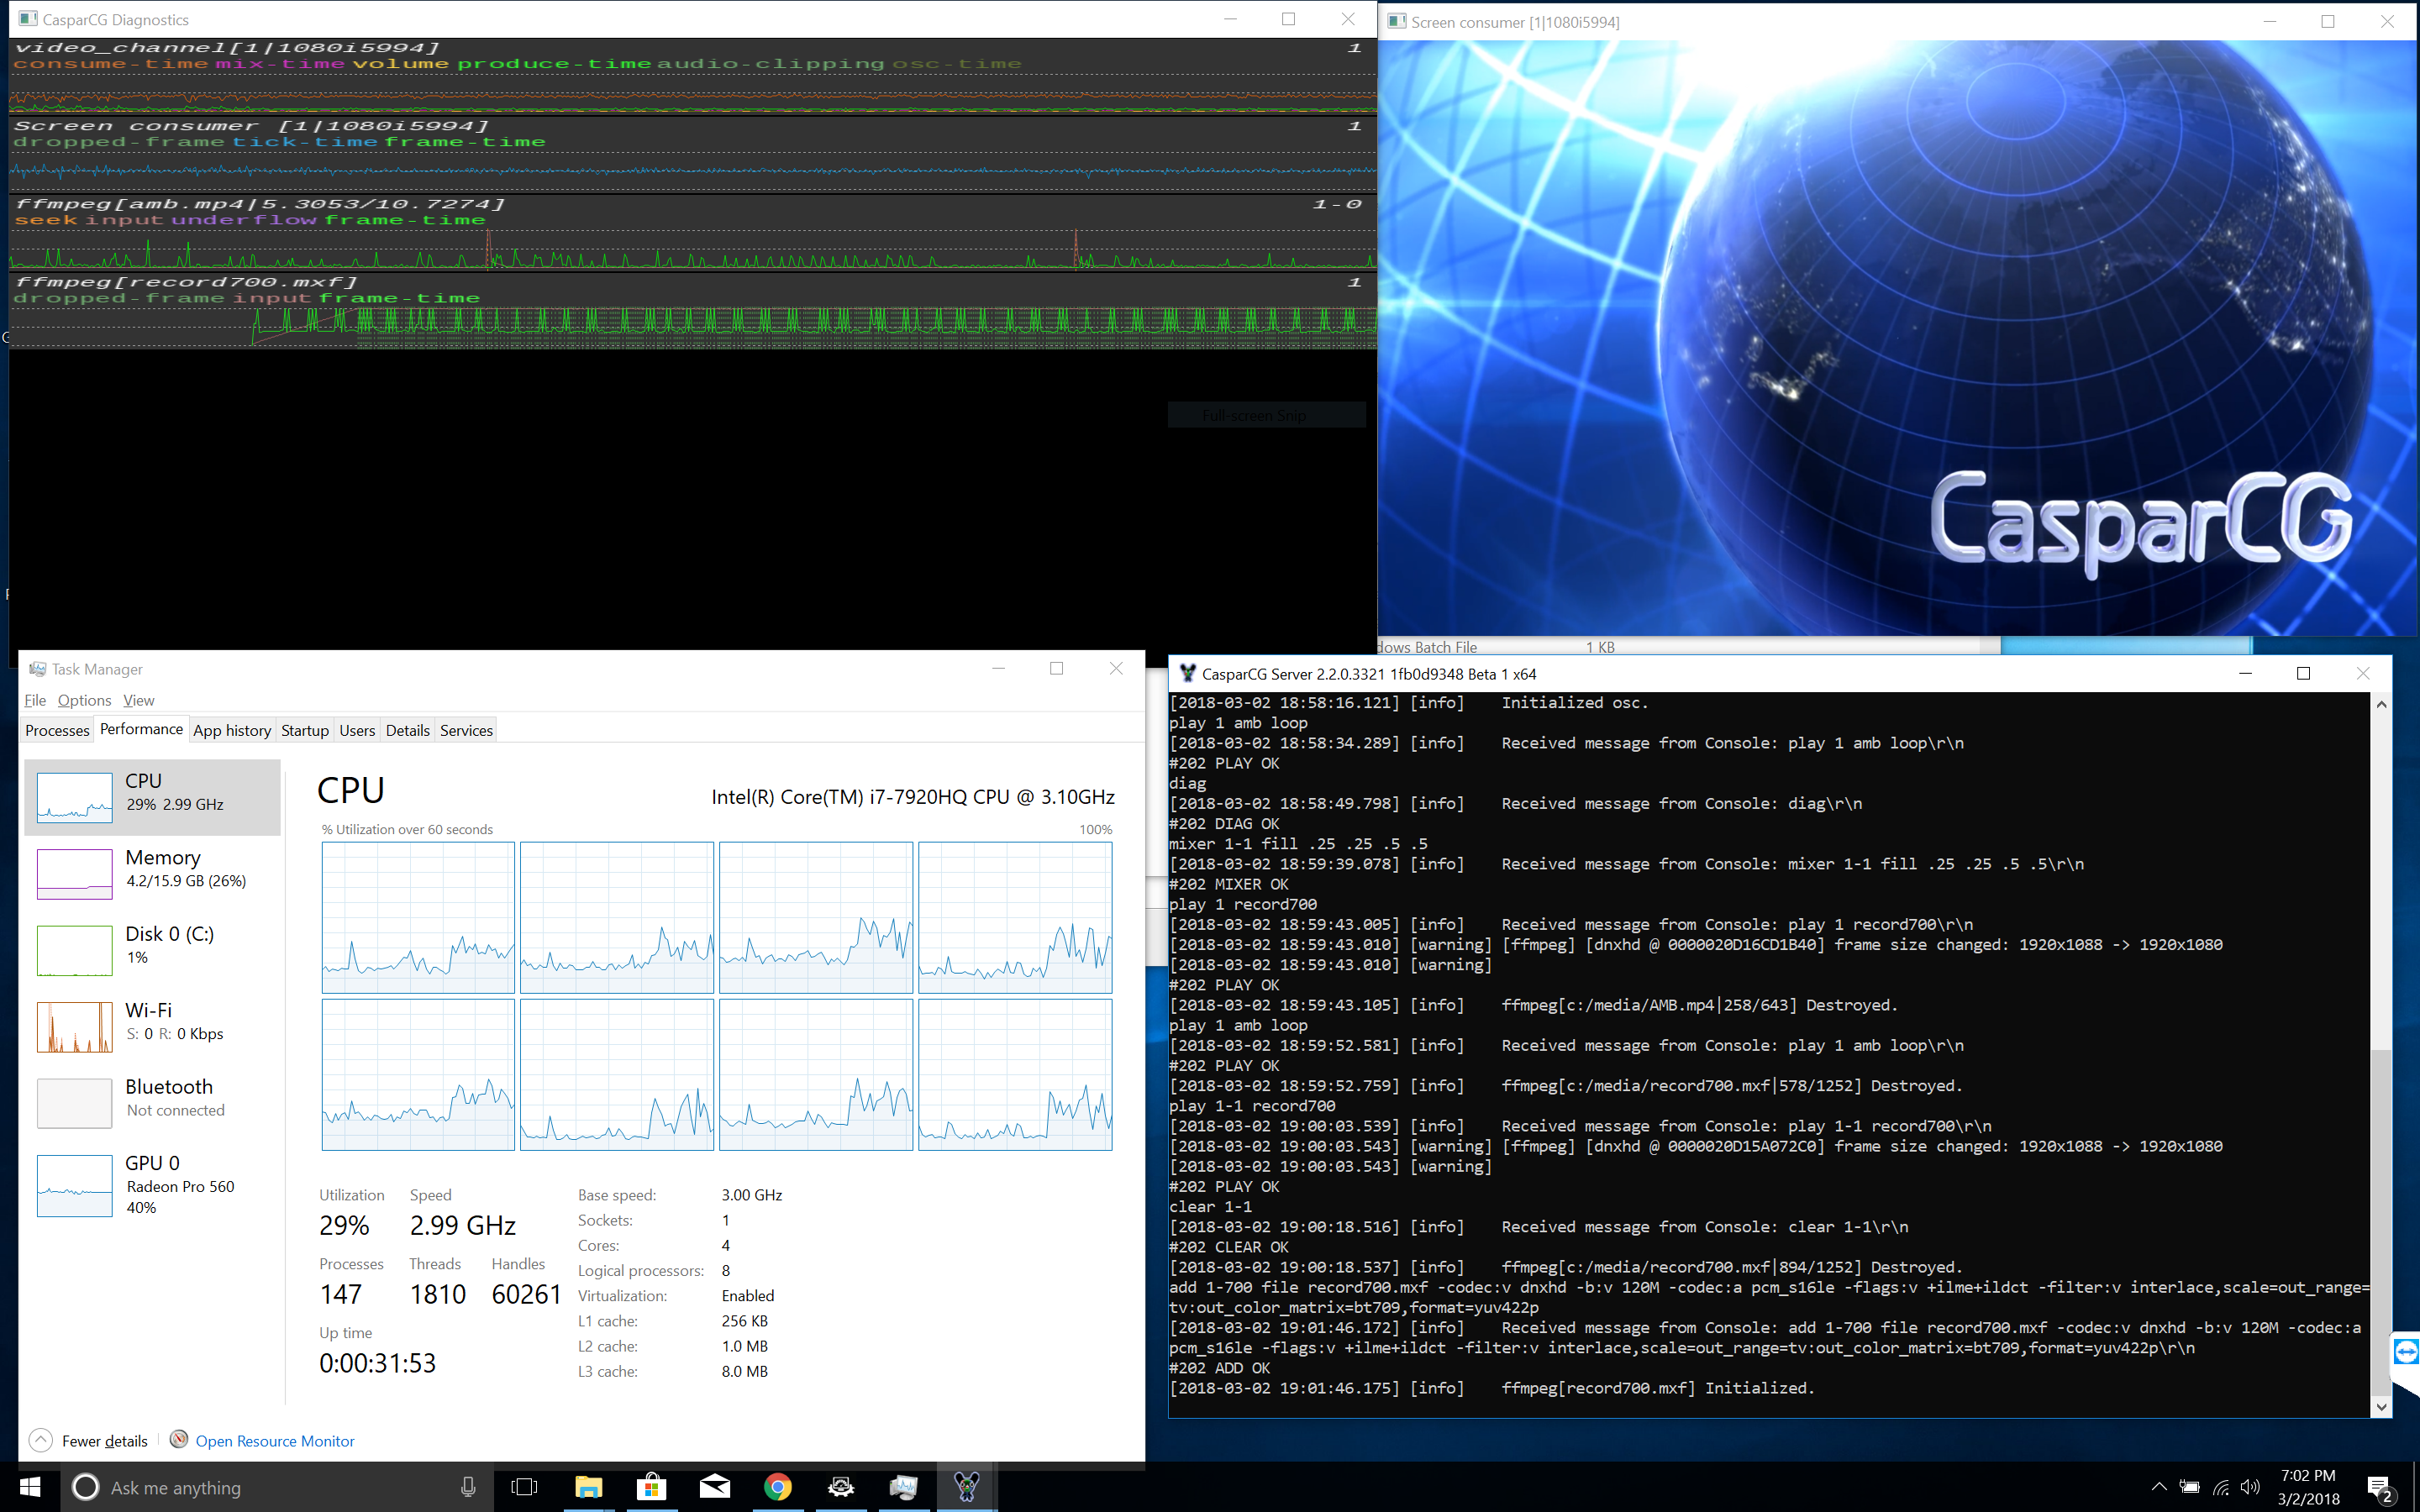 ffmpeg consumer slow colorspace transform on i59 · Issue